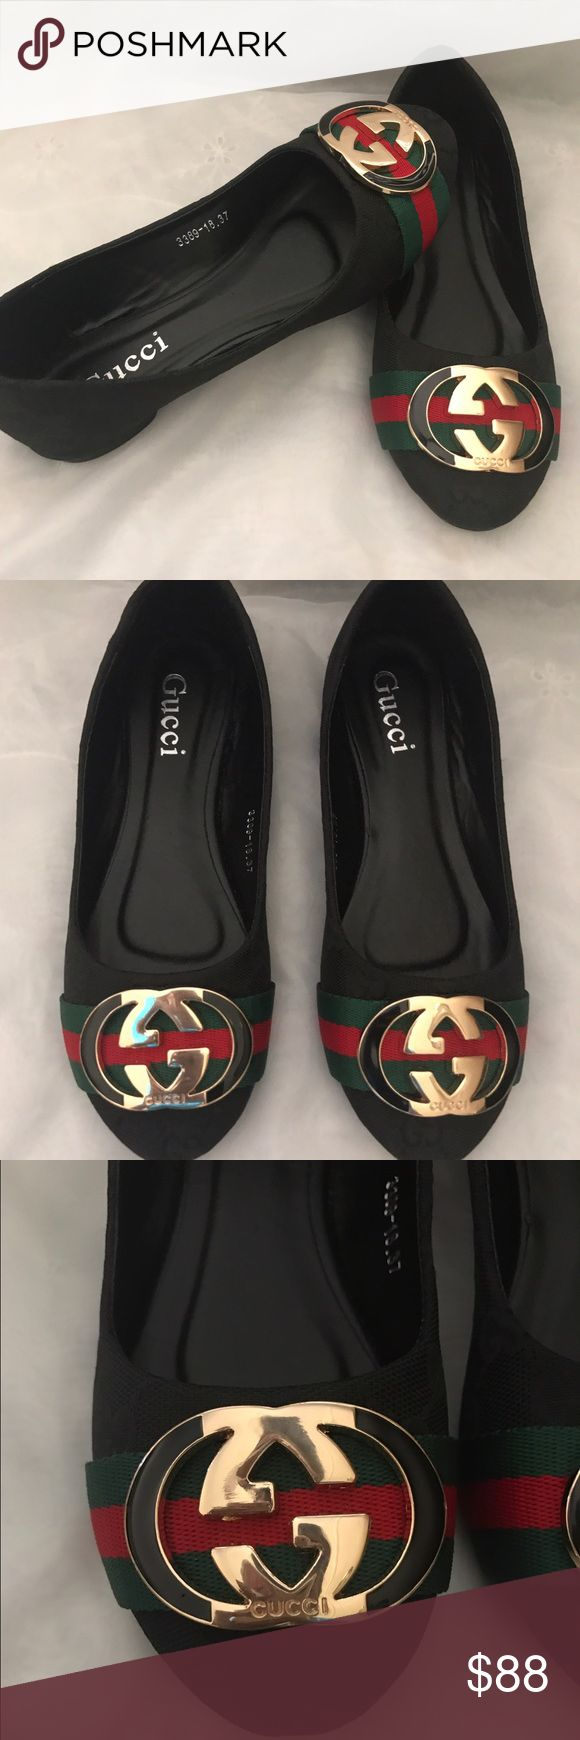 Gucci flats New have never been worn Gucci flats size 37 fit a 7  High quality clone. Gucci Shoes Flats & Loafers